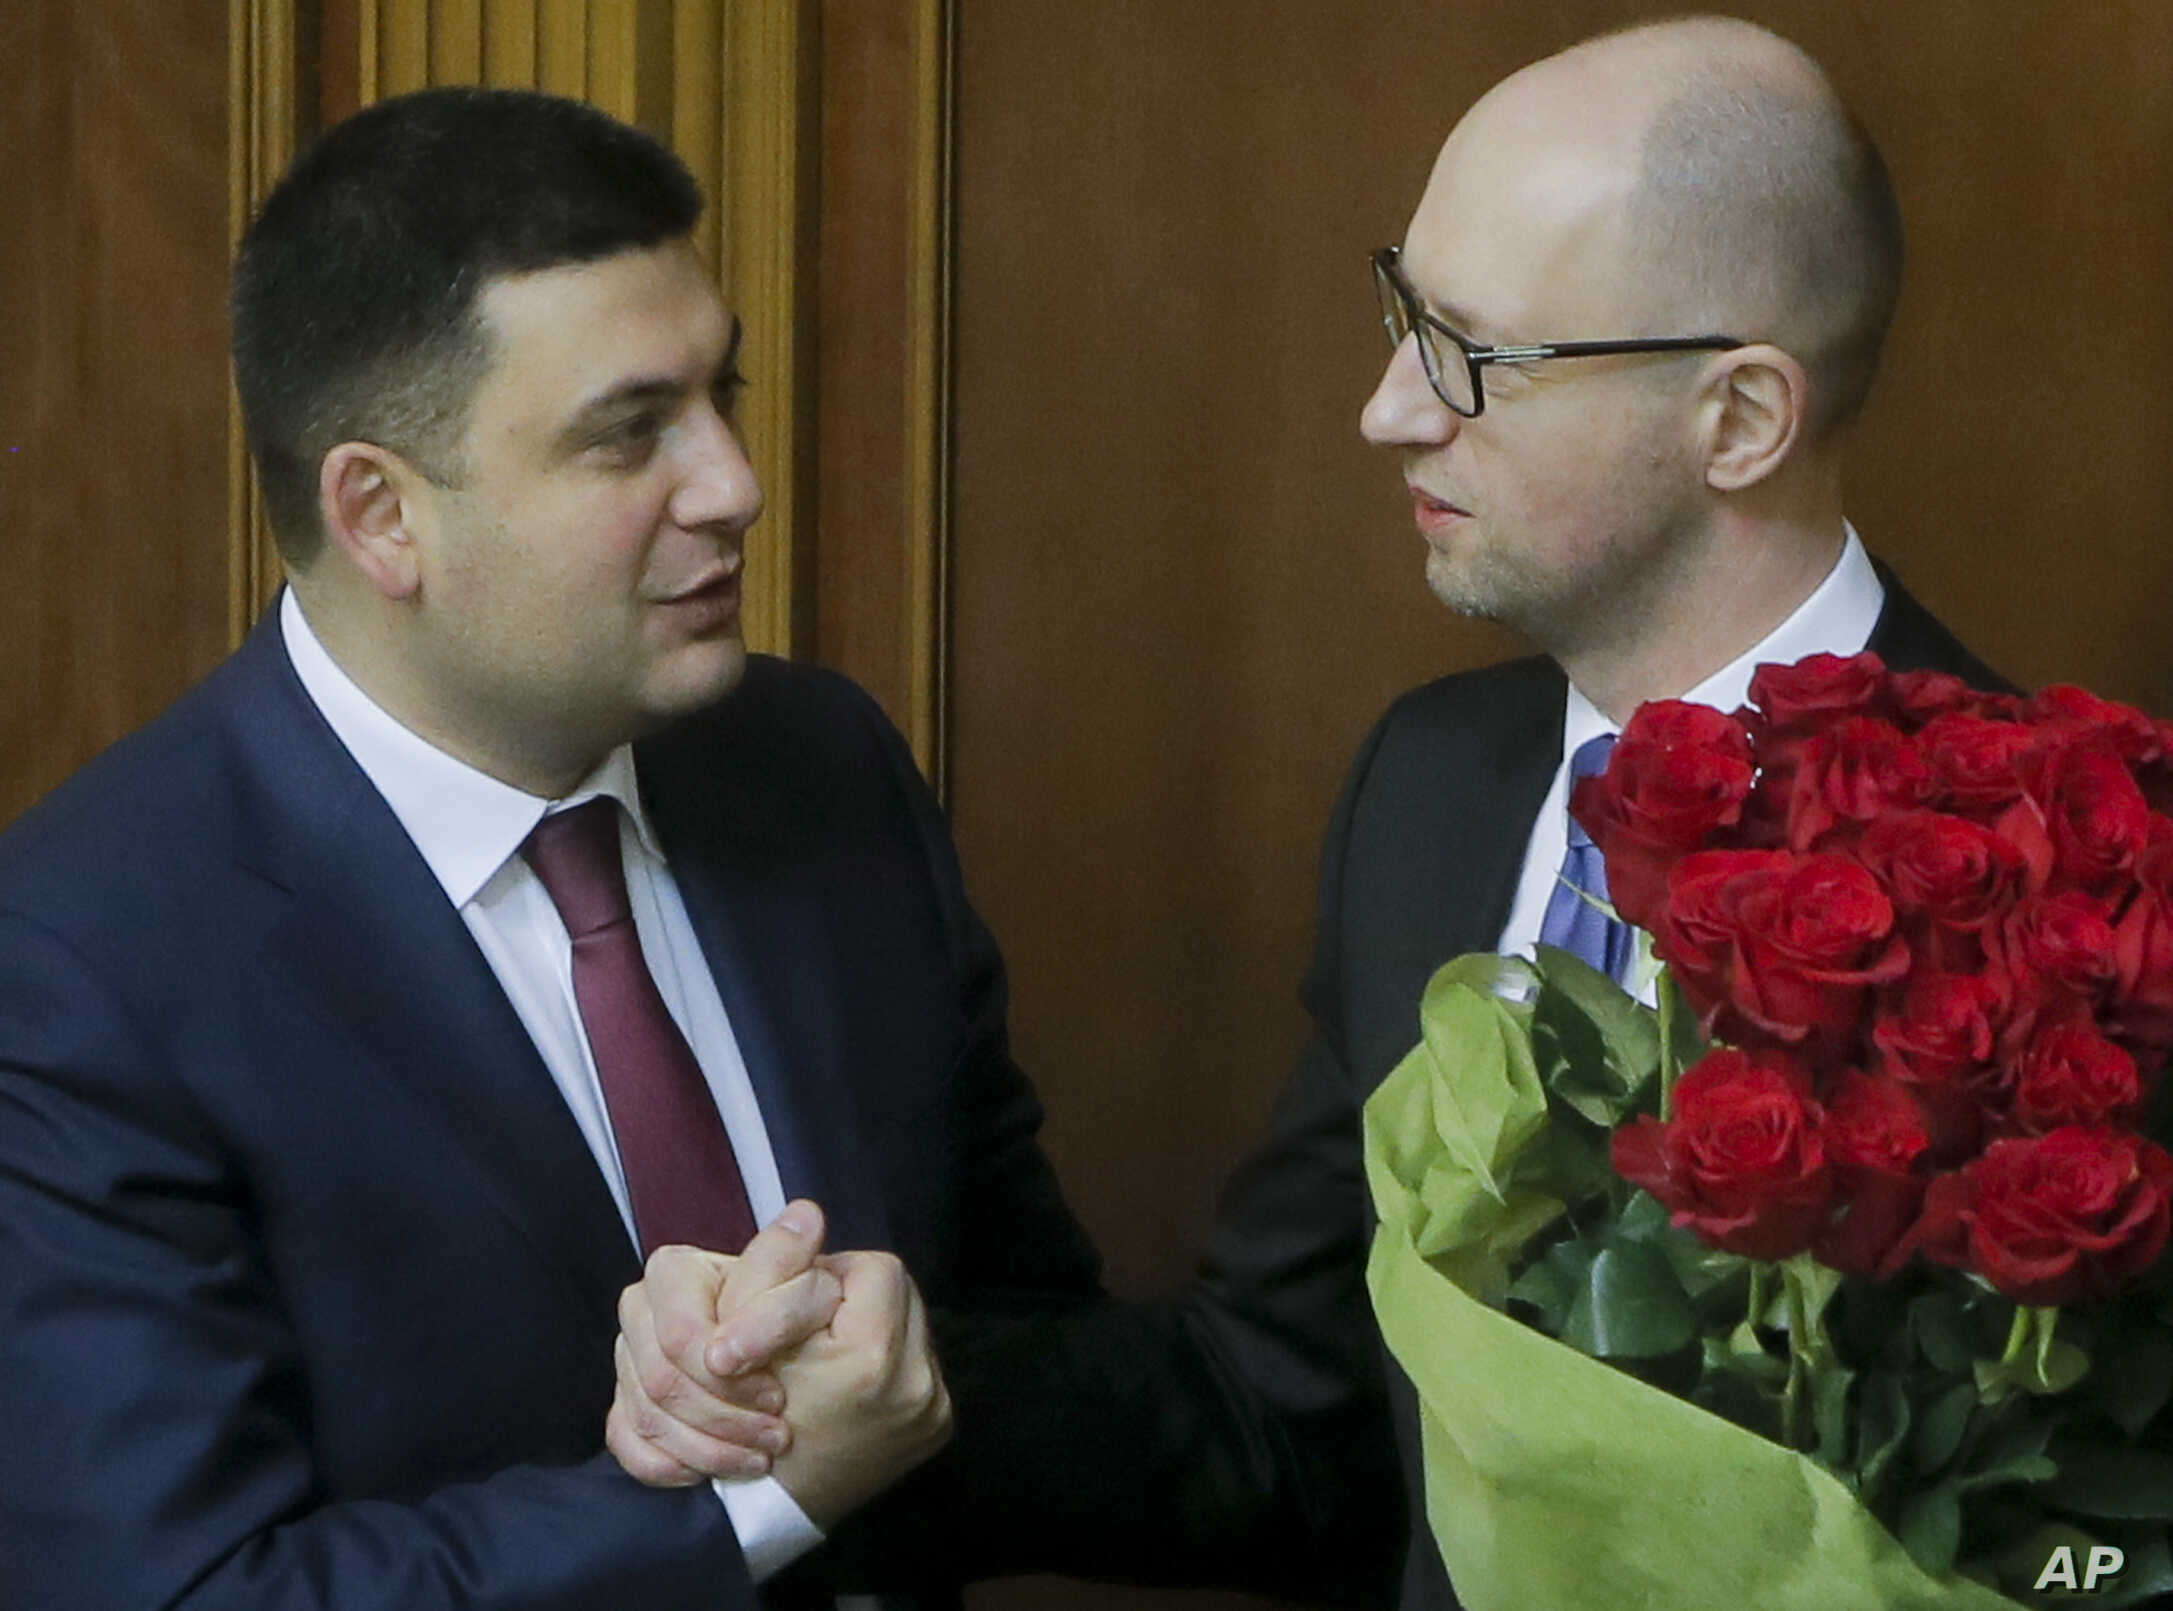 FILE- - Prime Minister Arseniy Yatsenyuk, right, and parliament speaker Volodymyr Groysman celebrate after Yatsenyuk was appointed the Prime Minister during the opening first session of the Ukrainian parliament in Kyiv, Nov. 27, 2014.